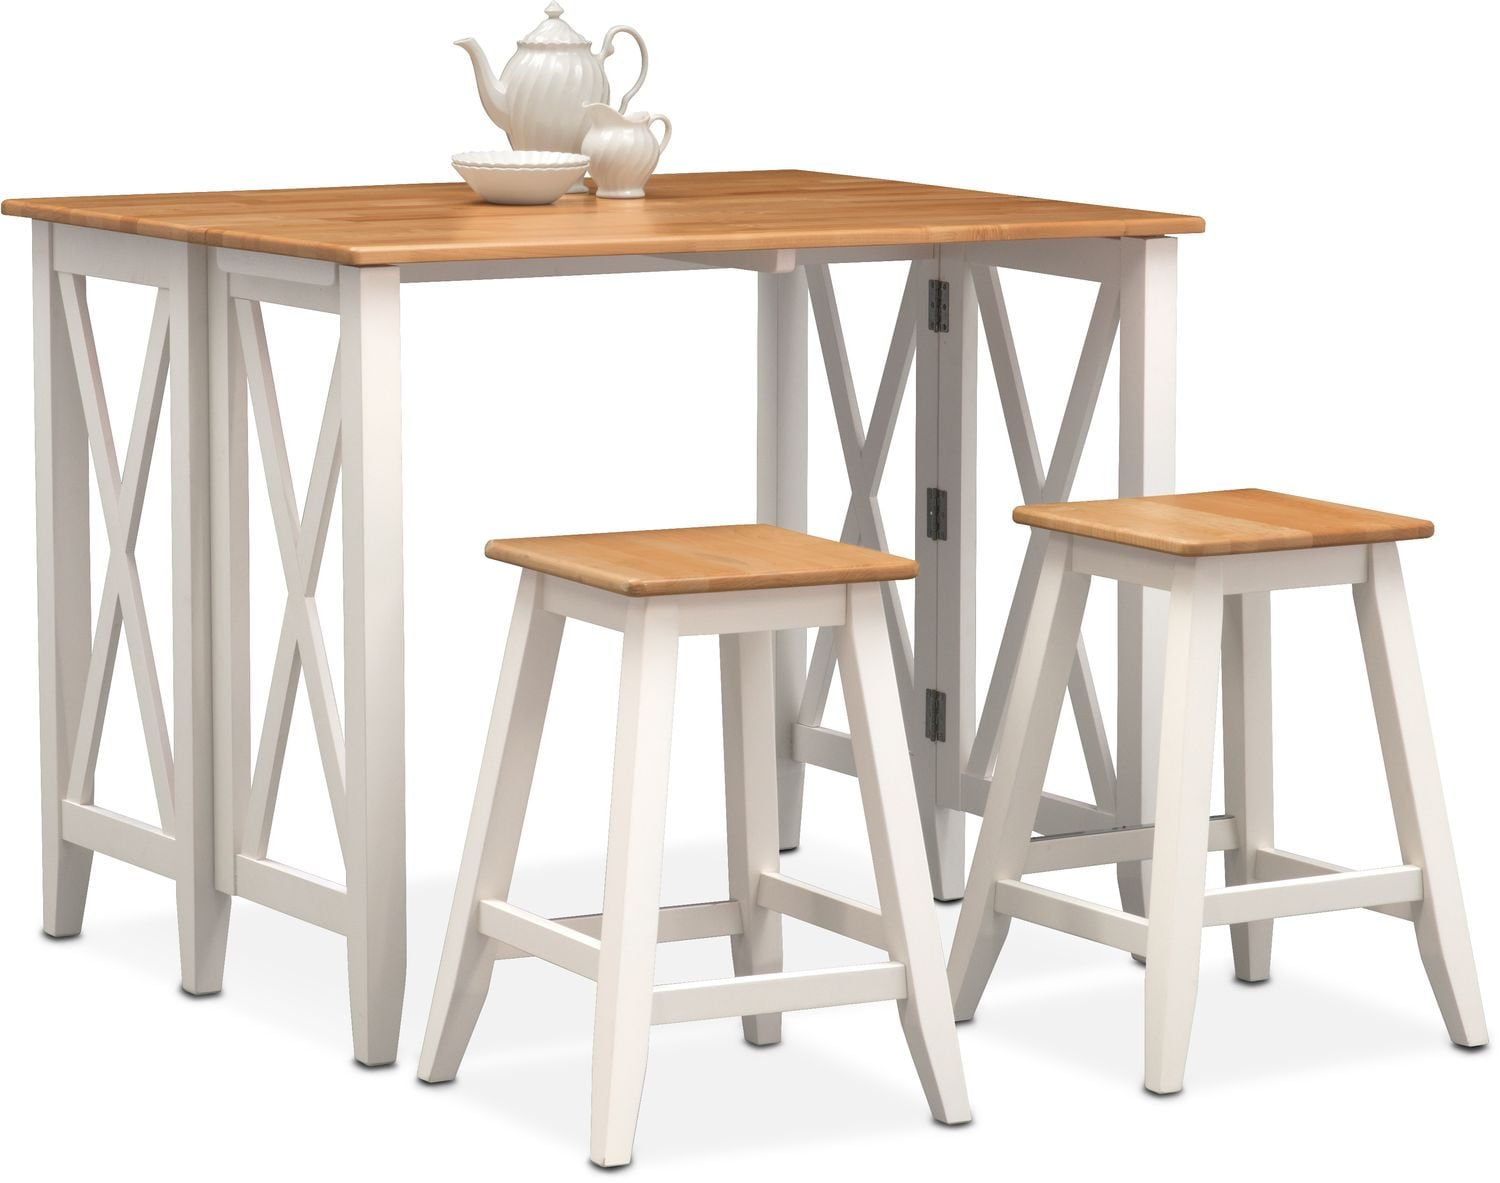 Dining Room Furniture - Nantucket Breakfast Bar and 2 Counter-Height Stools - Maple and White